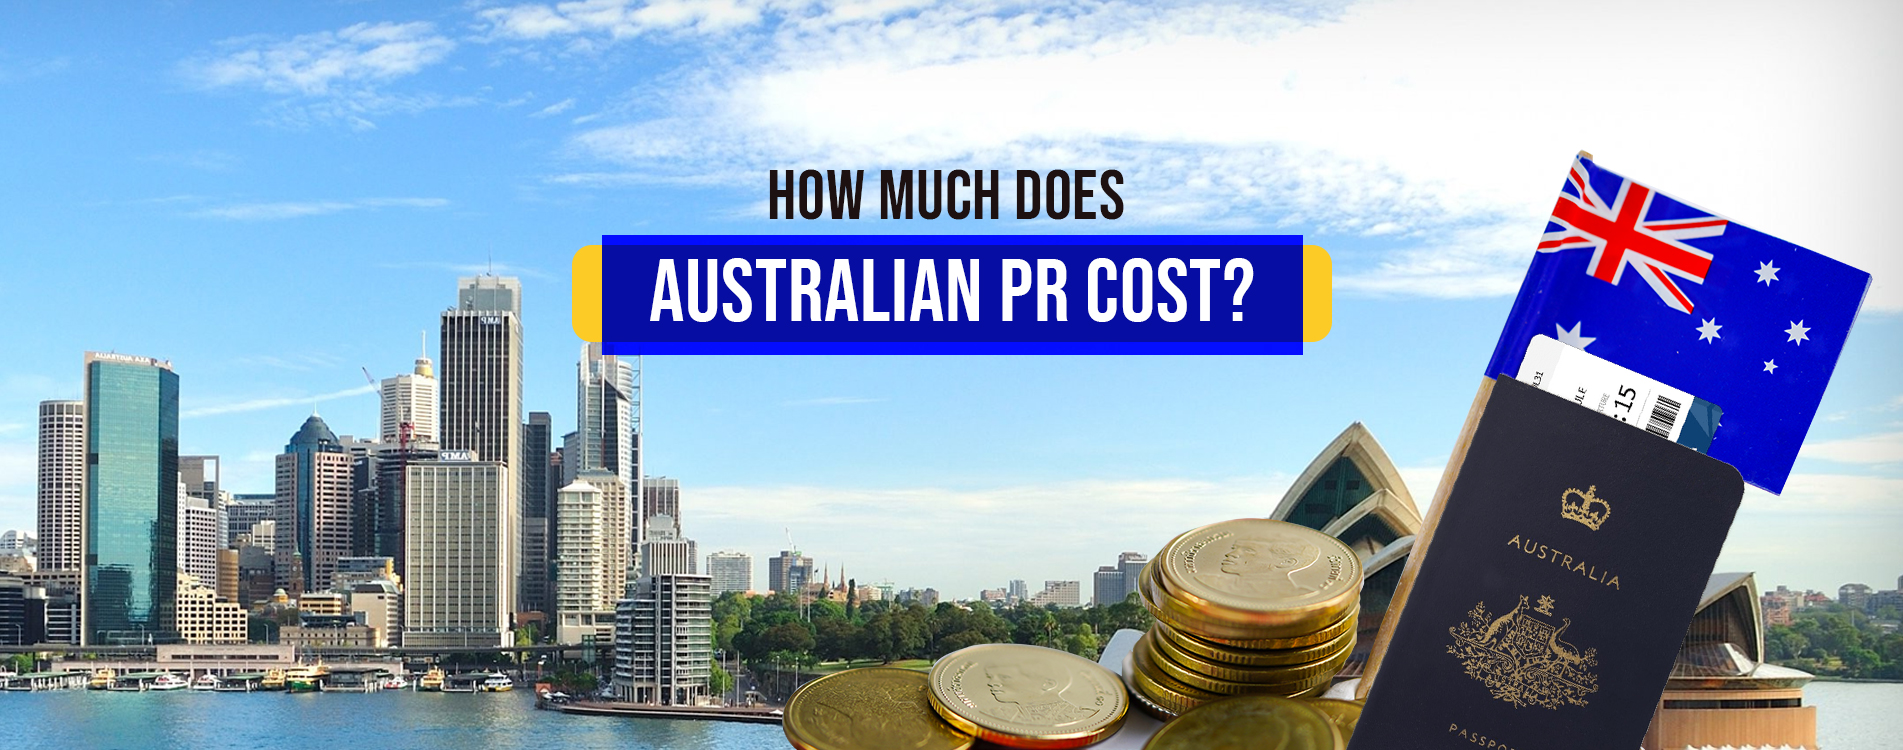 How Much Does Australian PR Cost?